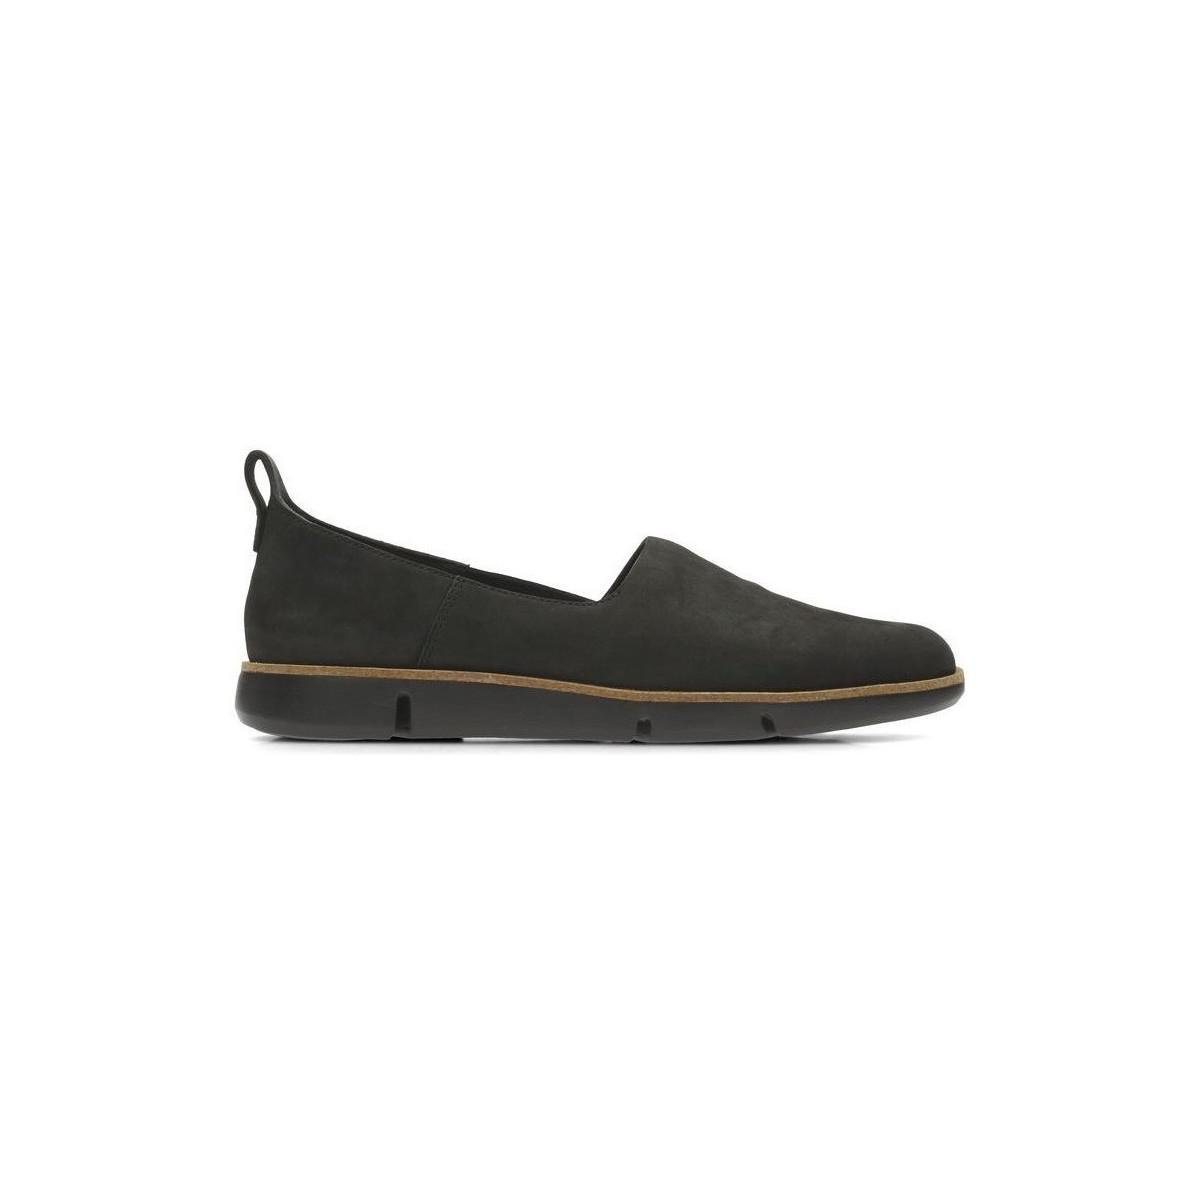 Get Authentic Sale Online Clearance With Mastercard Clarks Tri Curve women's Shoes (Pumps / Ballerinas) in Free Shipping Marketable i76ELlX